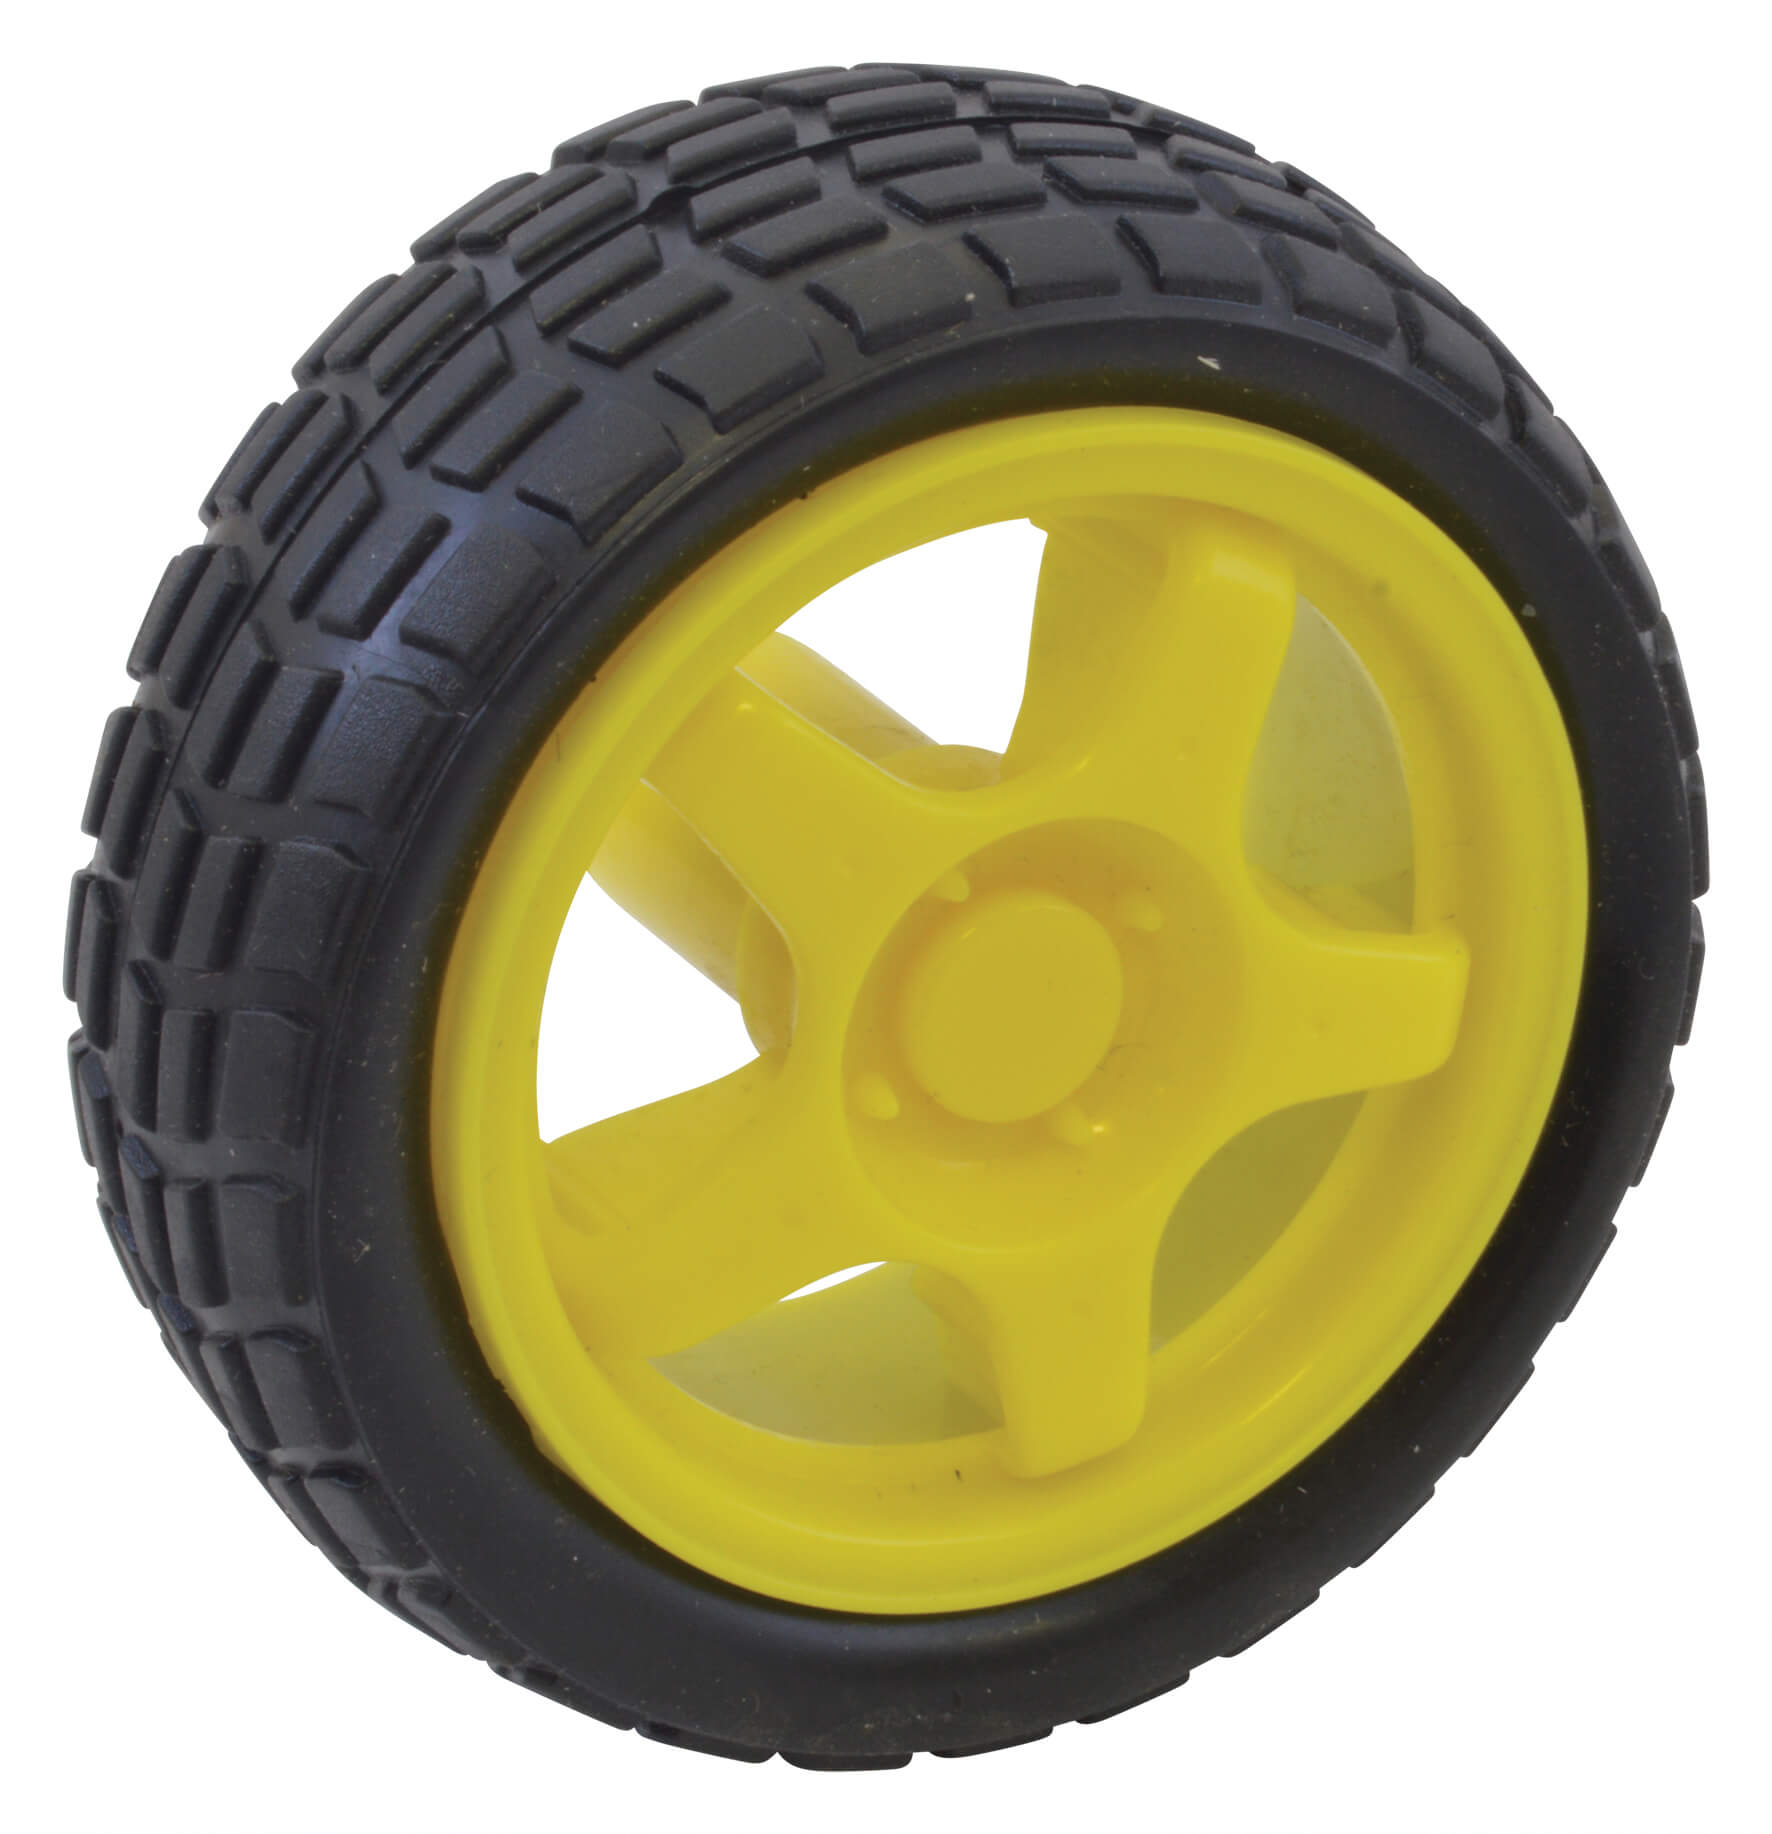 Tyred Wheel